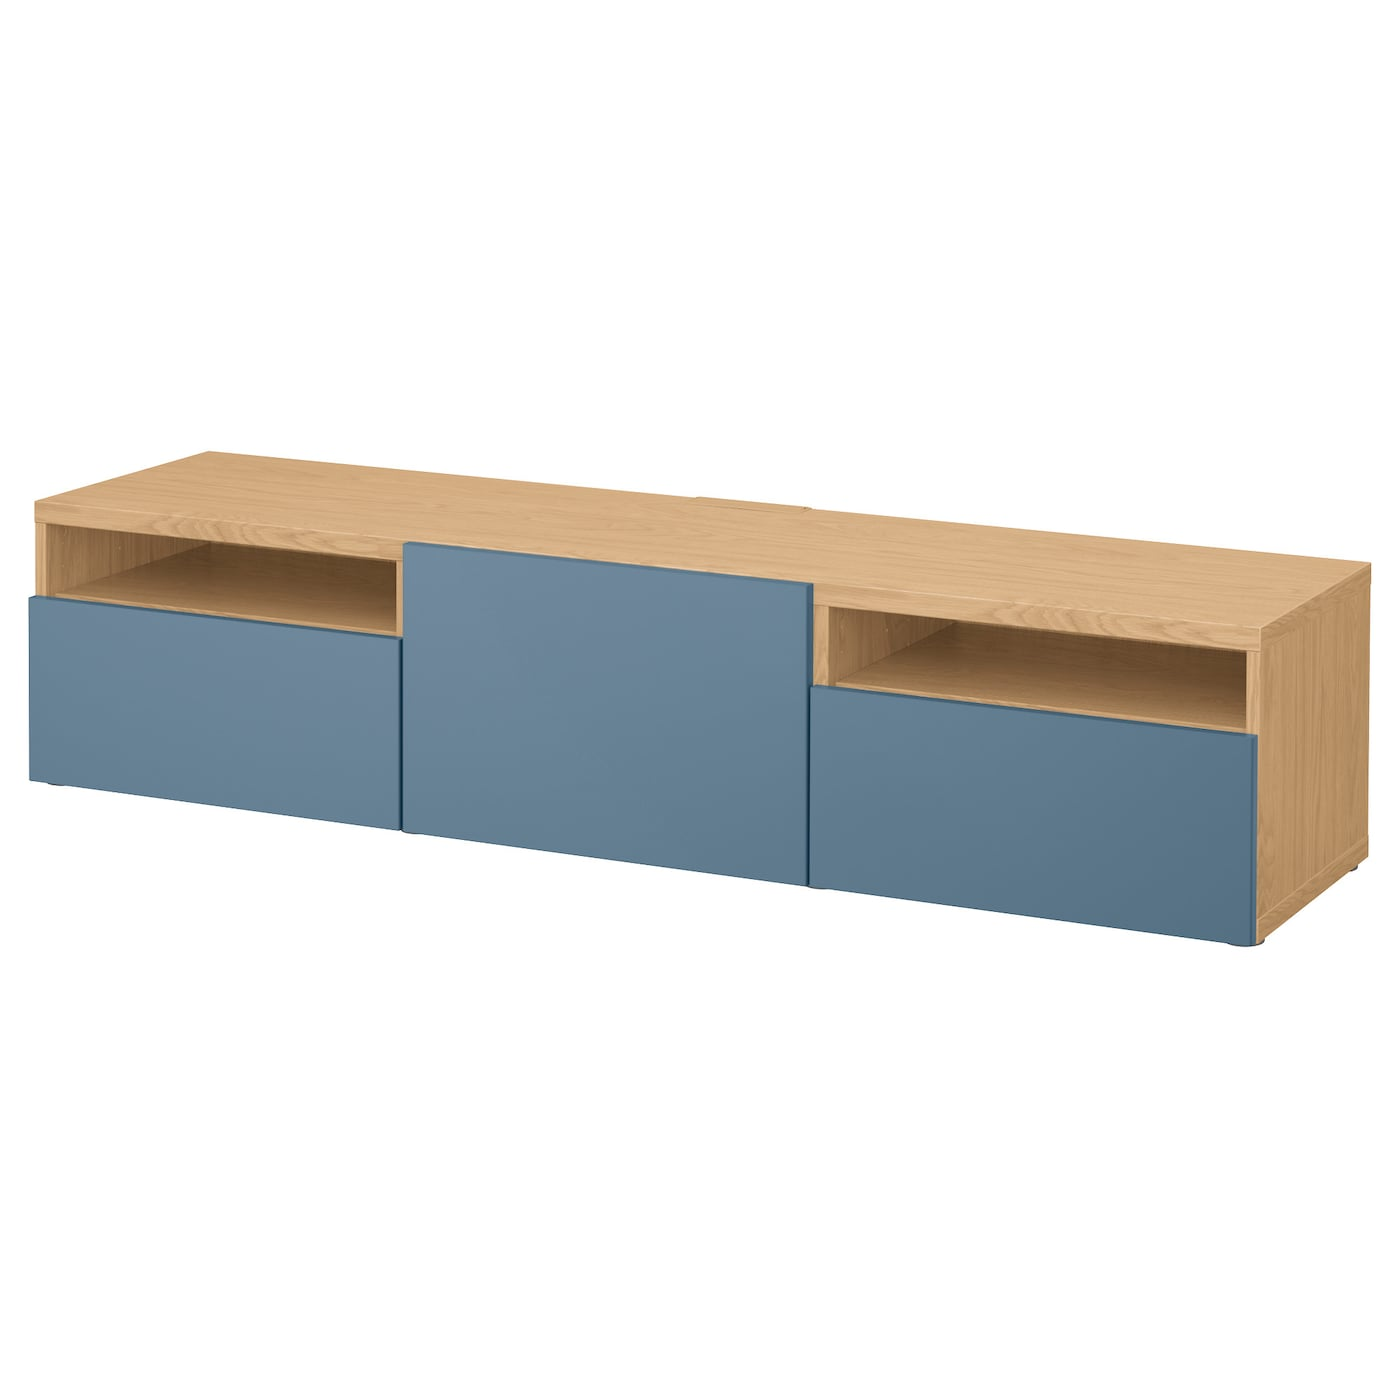 Best Tv Bench With Drawers Oak Effect Valviken Dark Blue 180x40x38 Cm Ikea